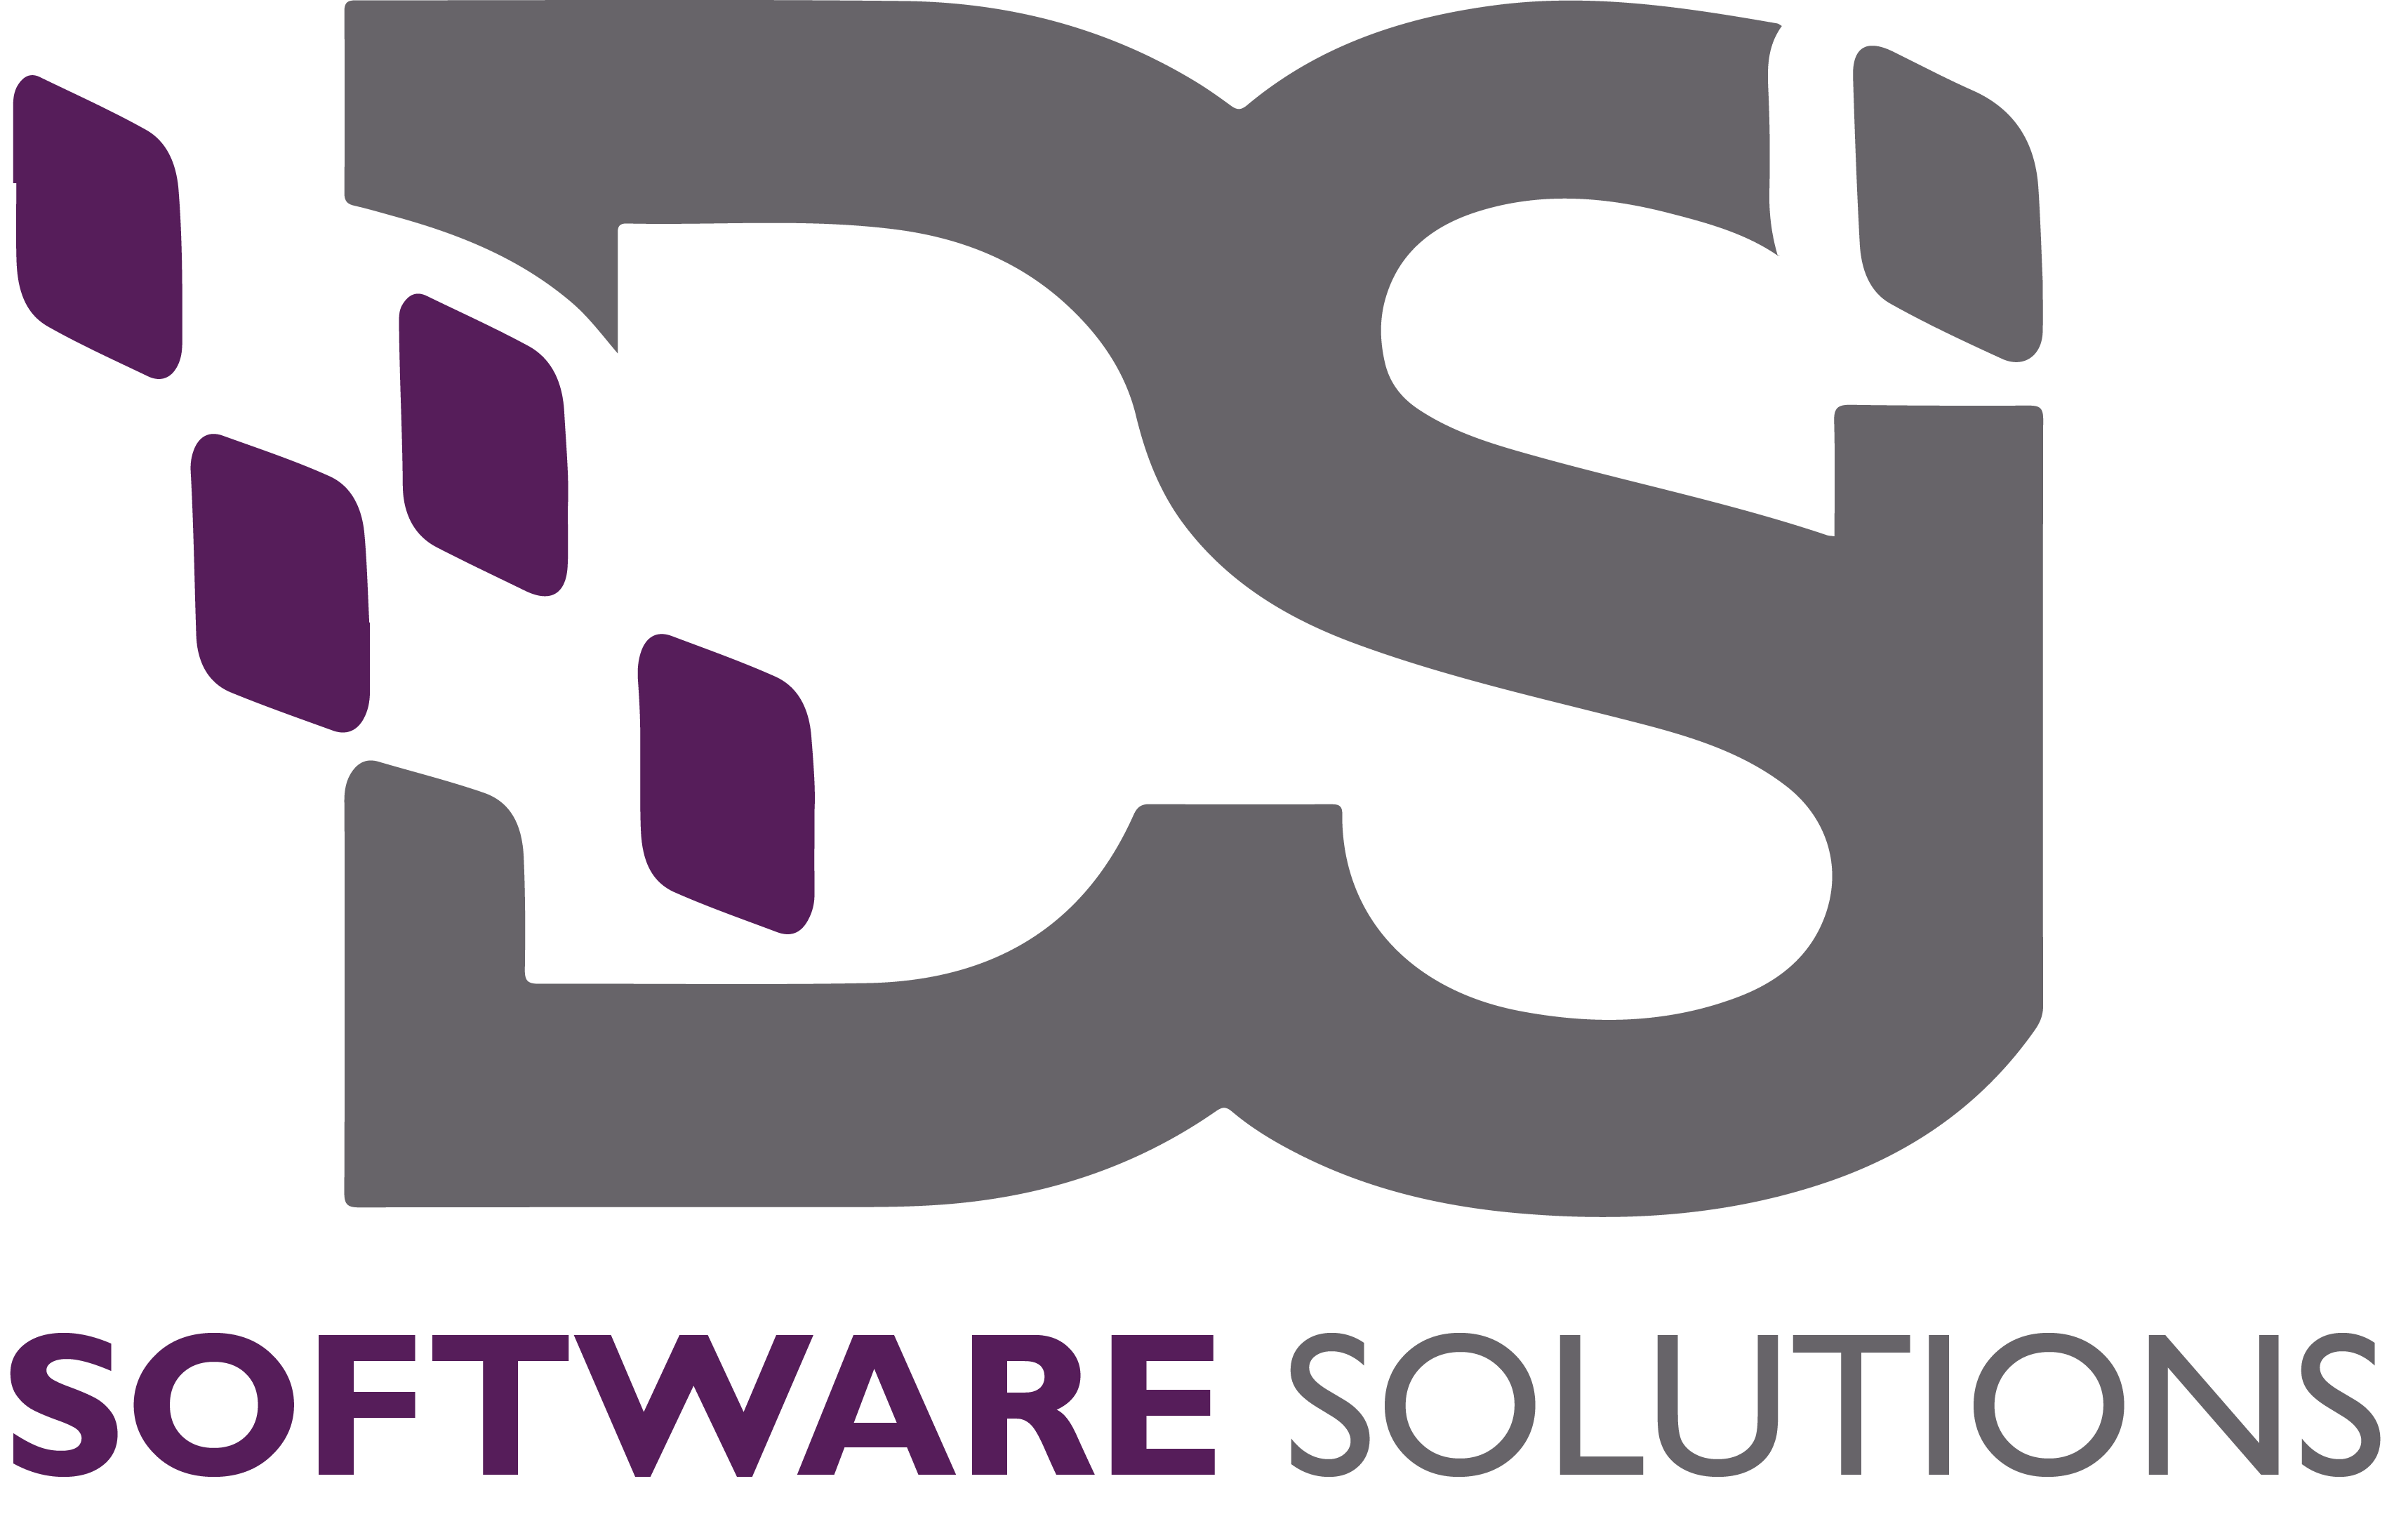 Document Solutions Inc. Software Solutions Logo in gray and purple